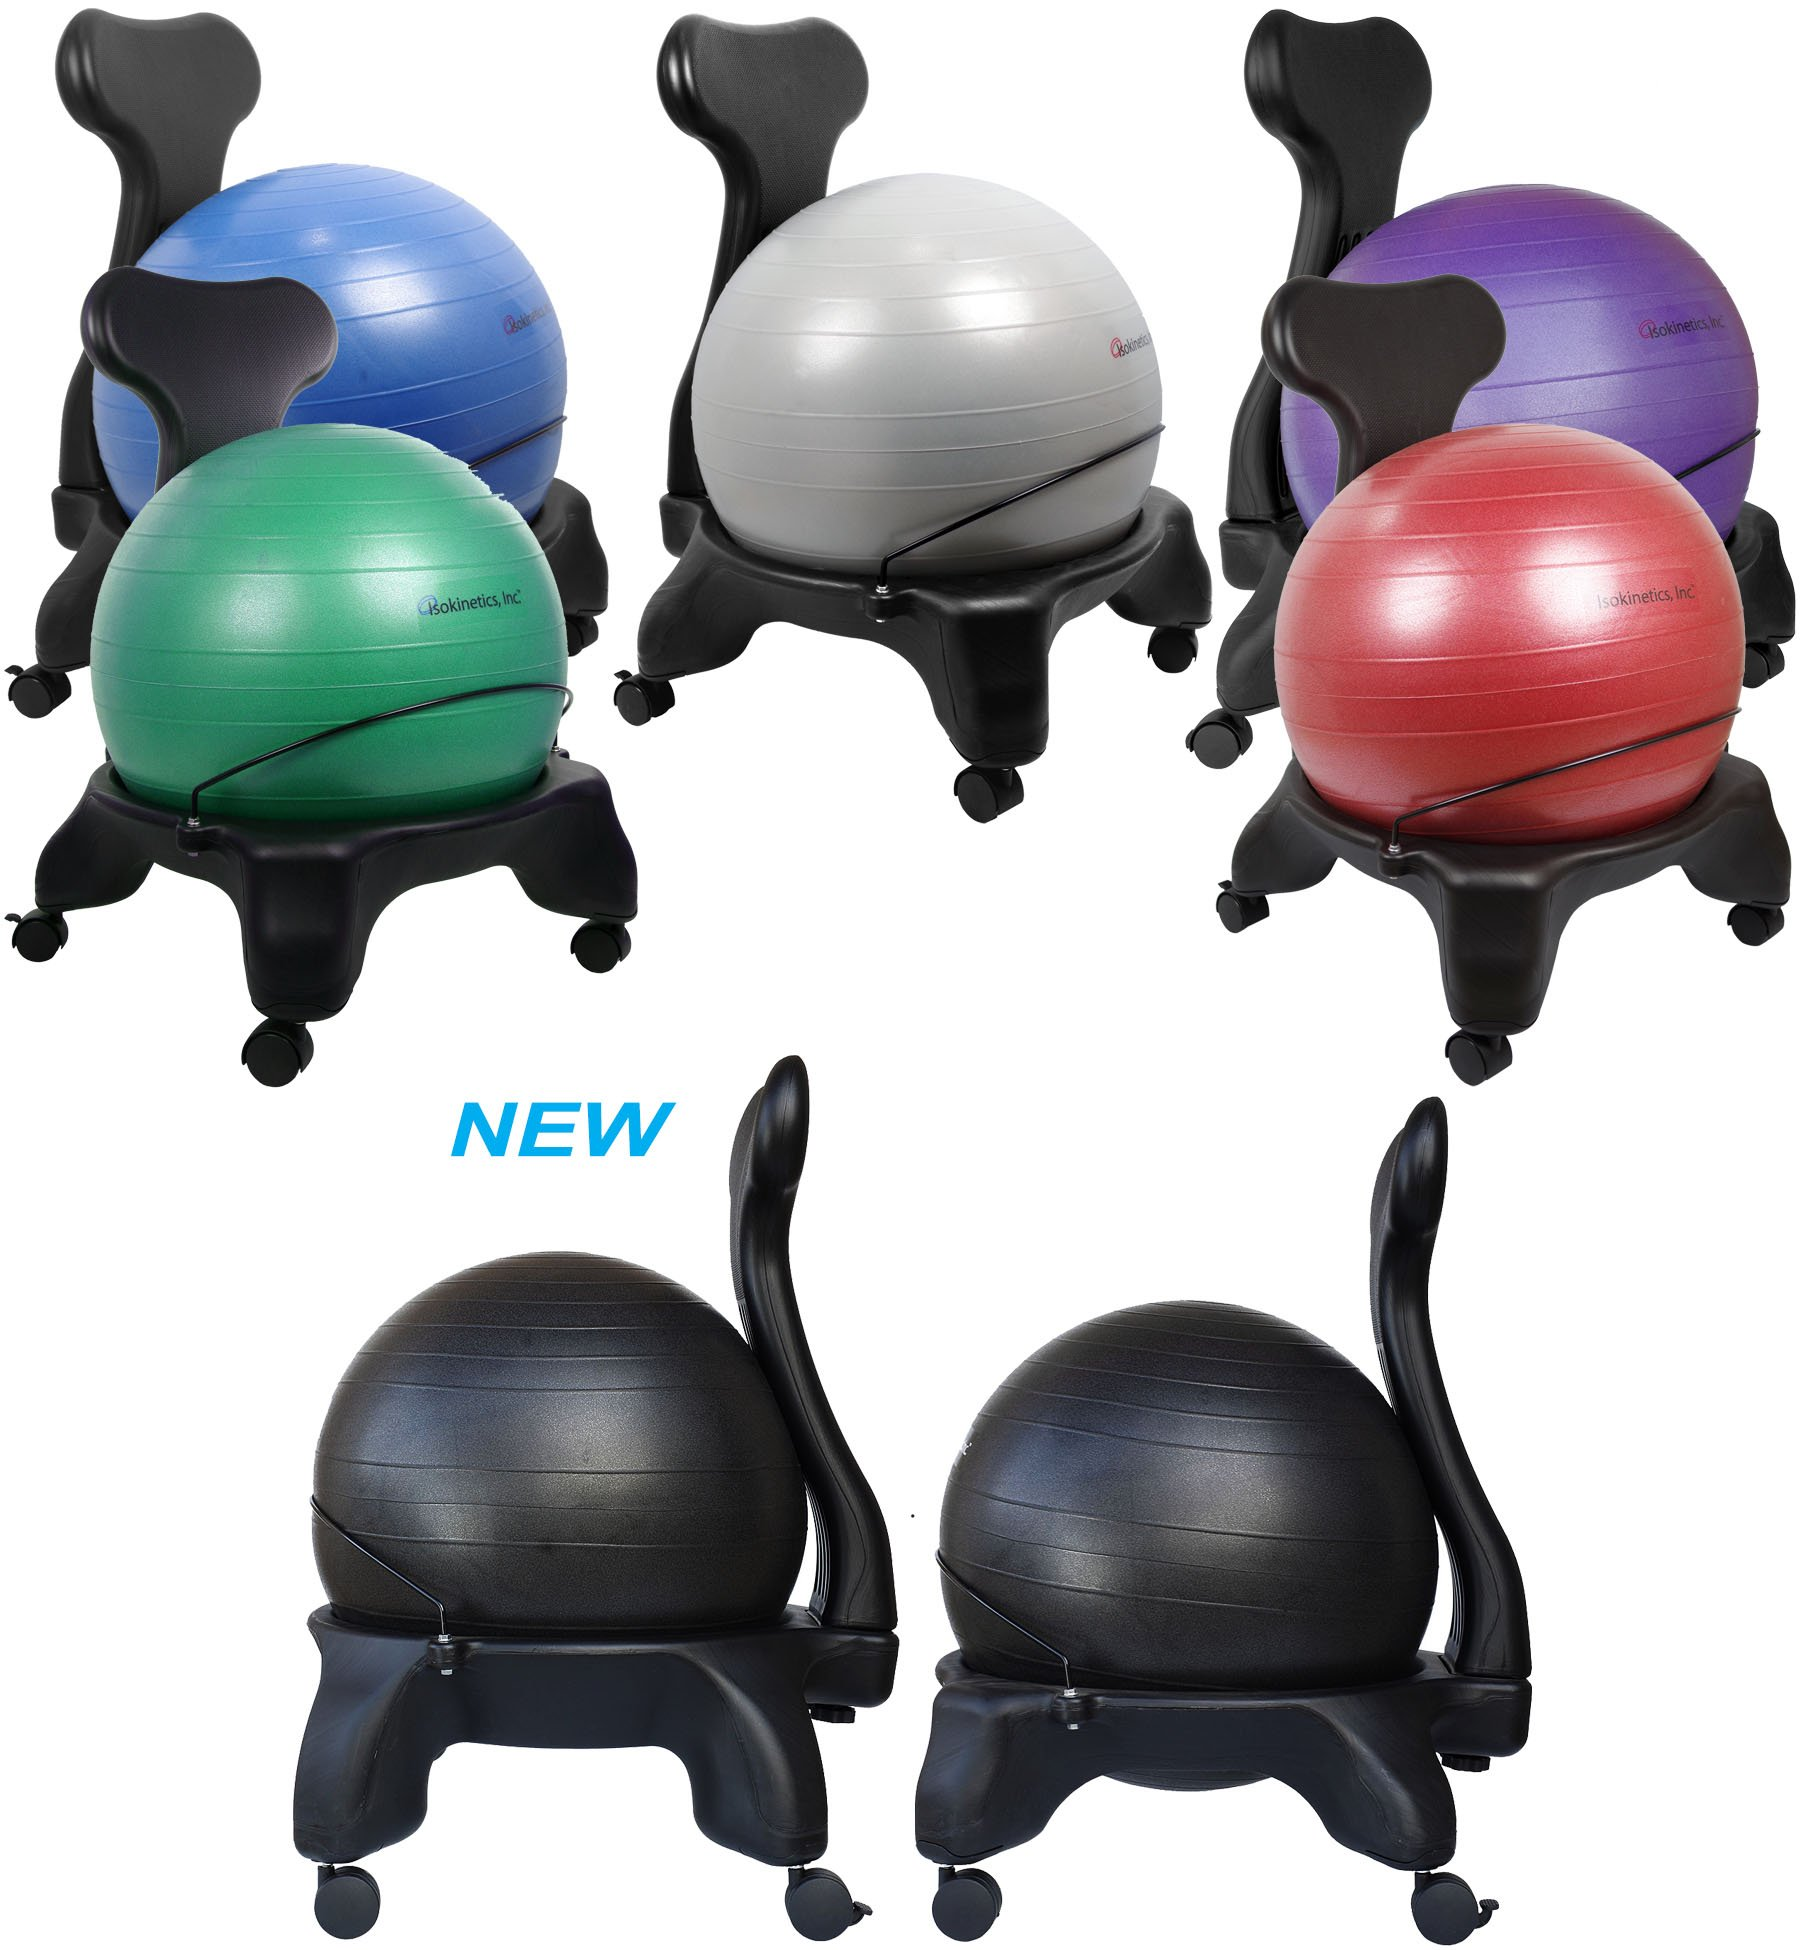 Balance Ball Chair Frame Only: Amazon.com: Isokinetics Inc. Balance Exercise Ball Chair